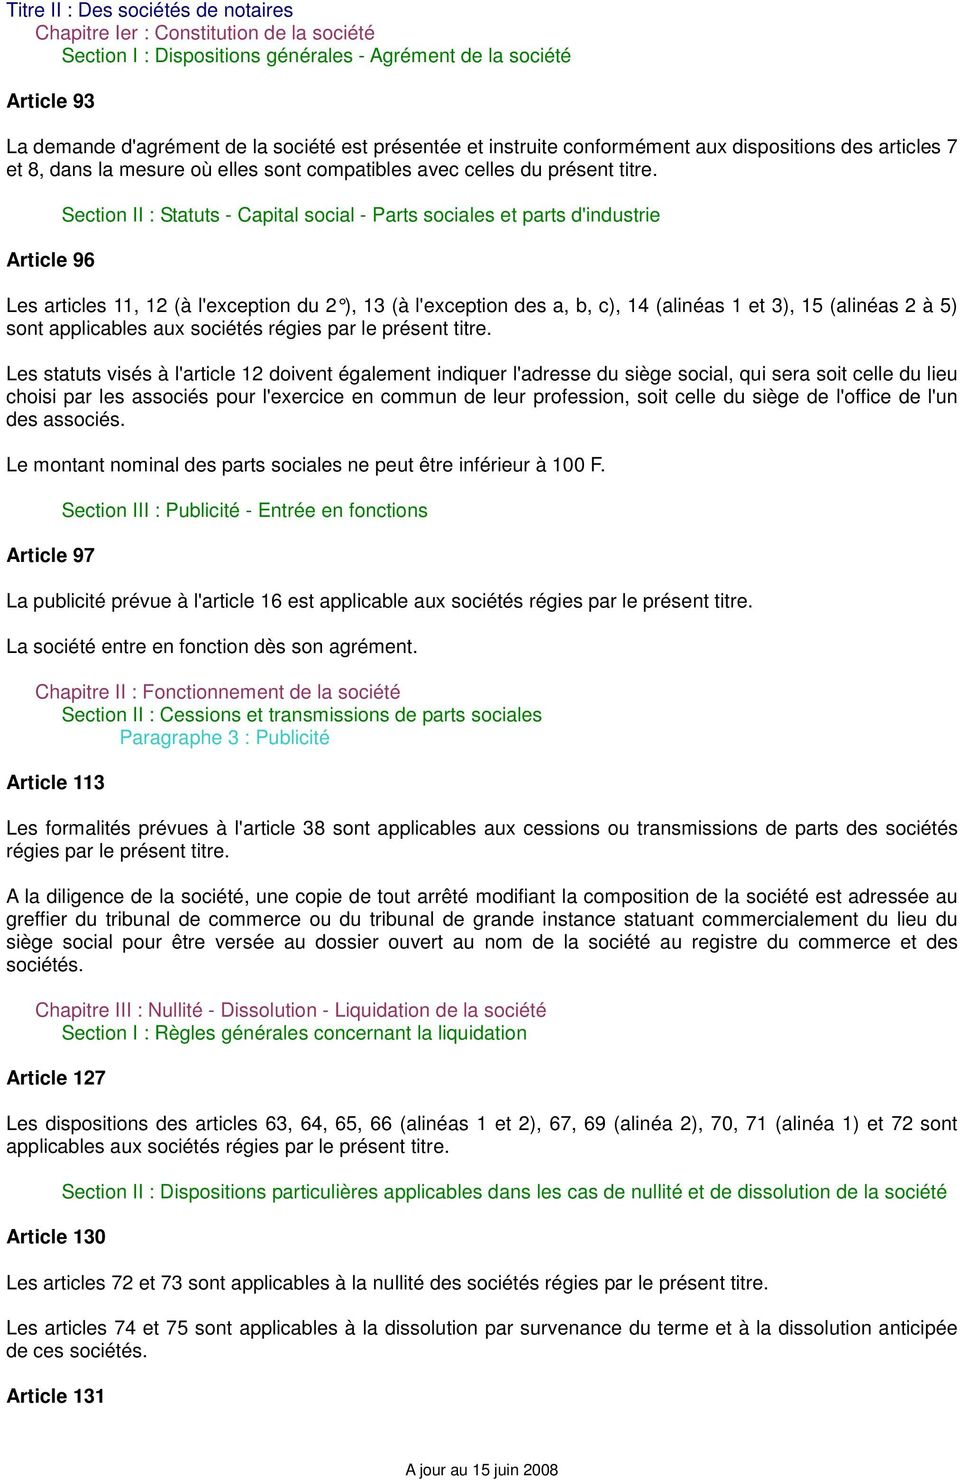 Article 96 Section II : Statuts - Capital social - Parts sociales et parts d'industrie Les articles 11, 12 (à l'exception du 2 ), 13 (à l' exception des a, b, c), 14 (alinéas 1 et 3), 15 (alinéas 2 à